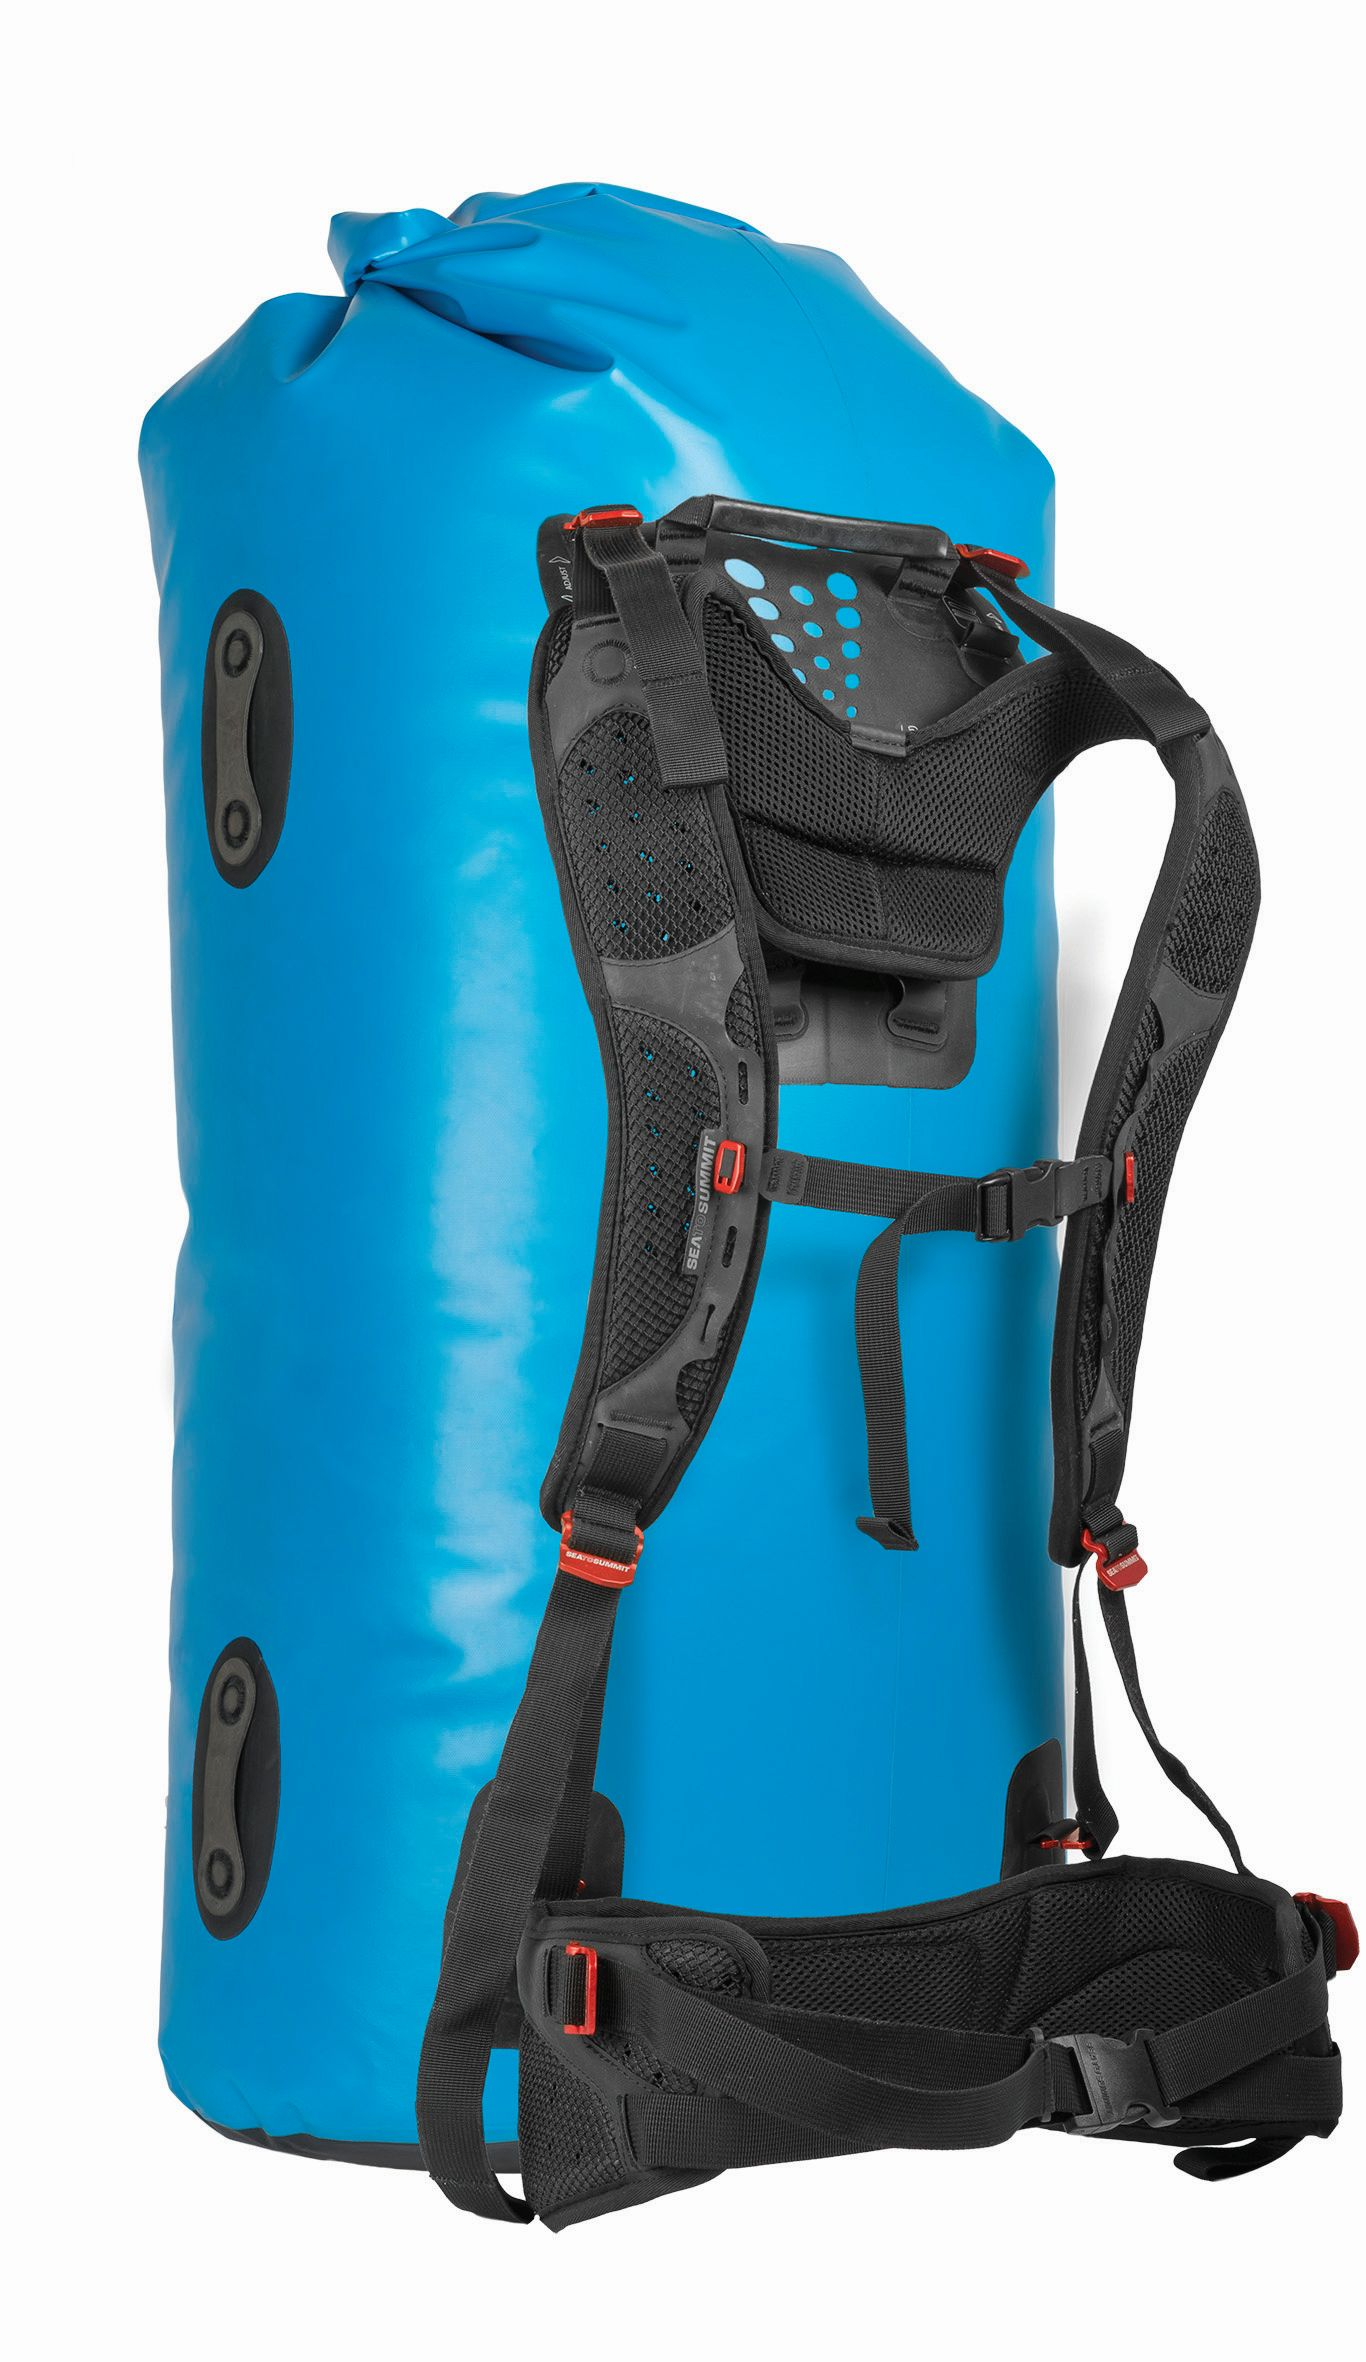 Sea To Summit Hydraulic Dry Bag with Harness 65L Blue-30